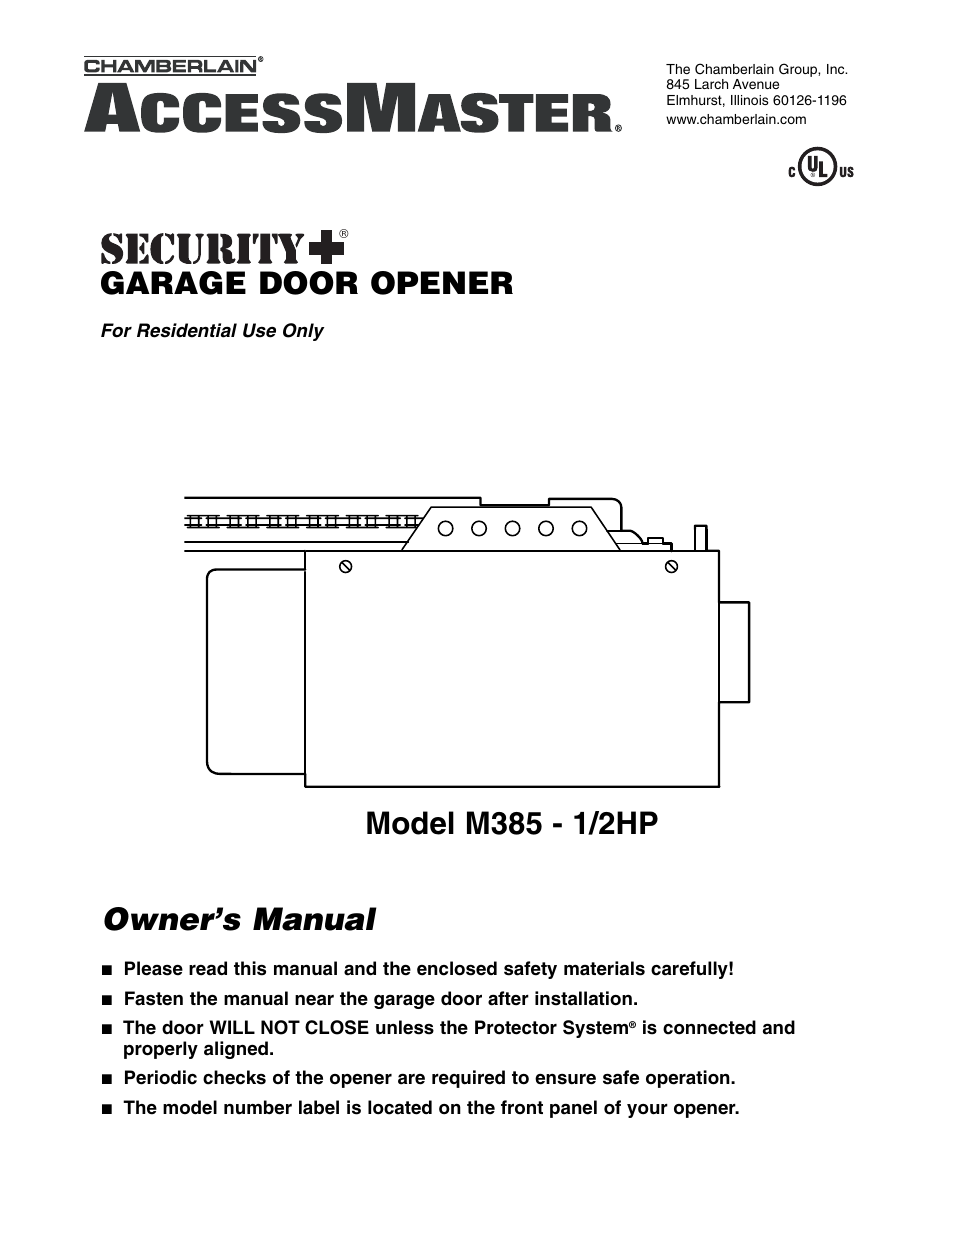 Chamberlain Garage Door Opener Manual Schematic